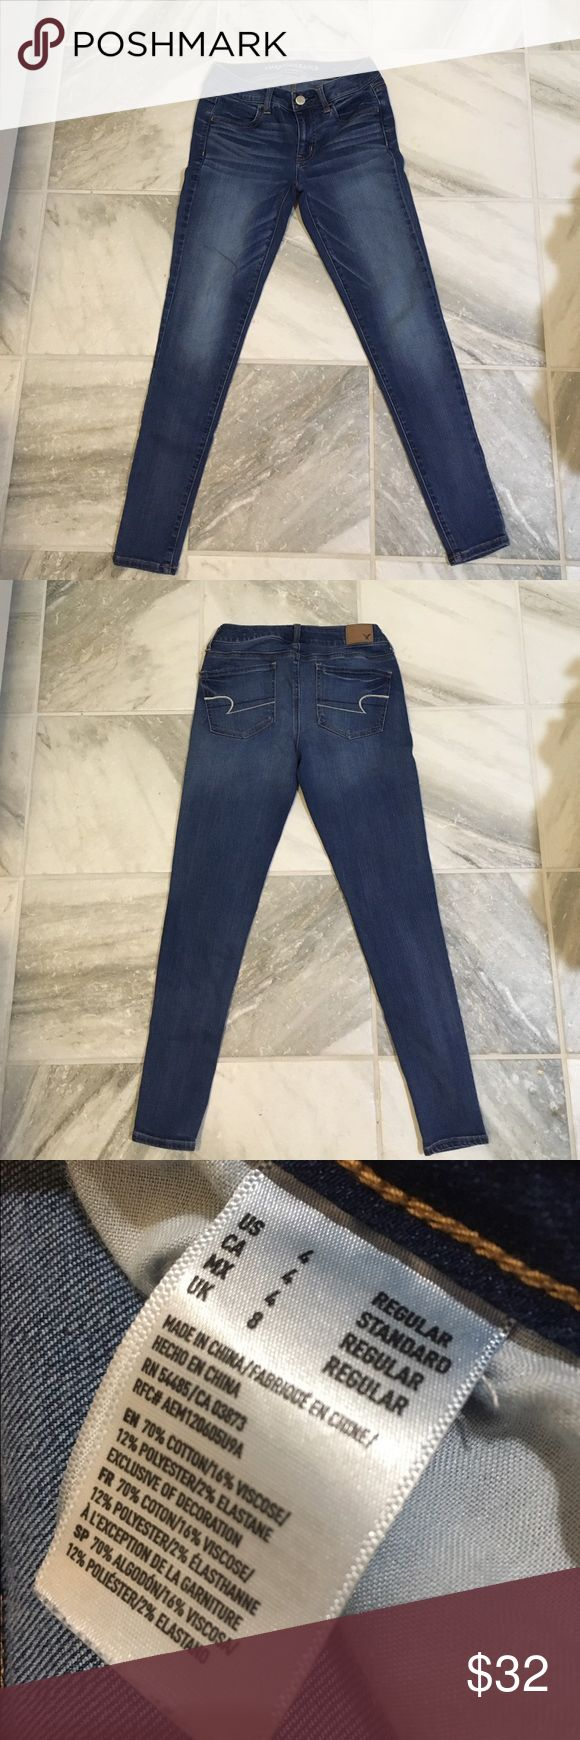 American Eagle Jeans Only worn once • reason for sale - did not fit • great condition American Eagle Outfitters Jeans Skinny